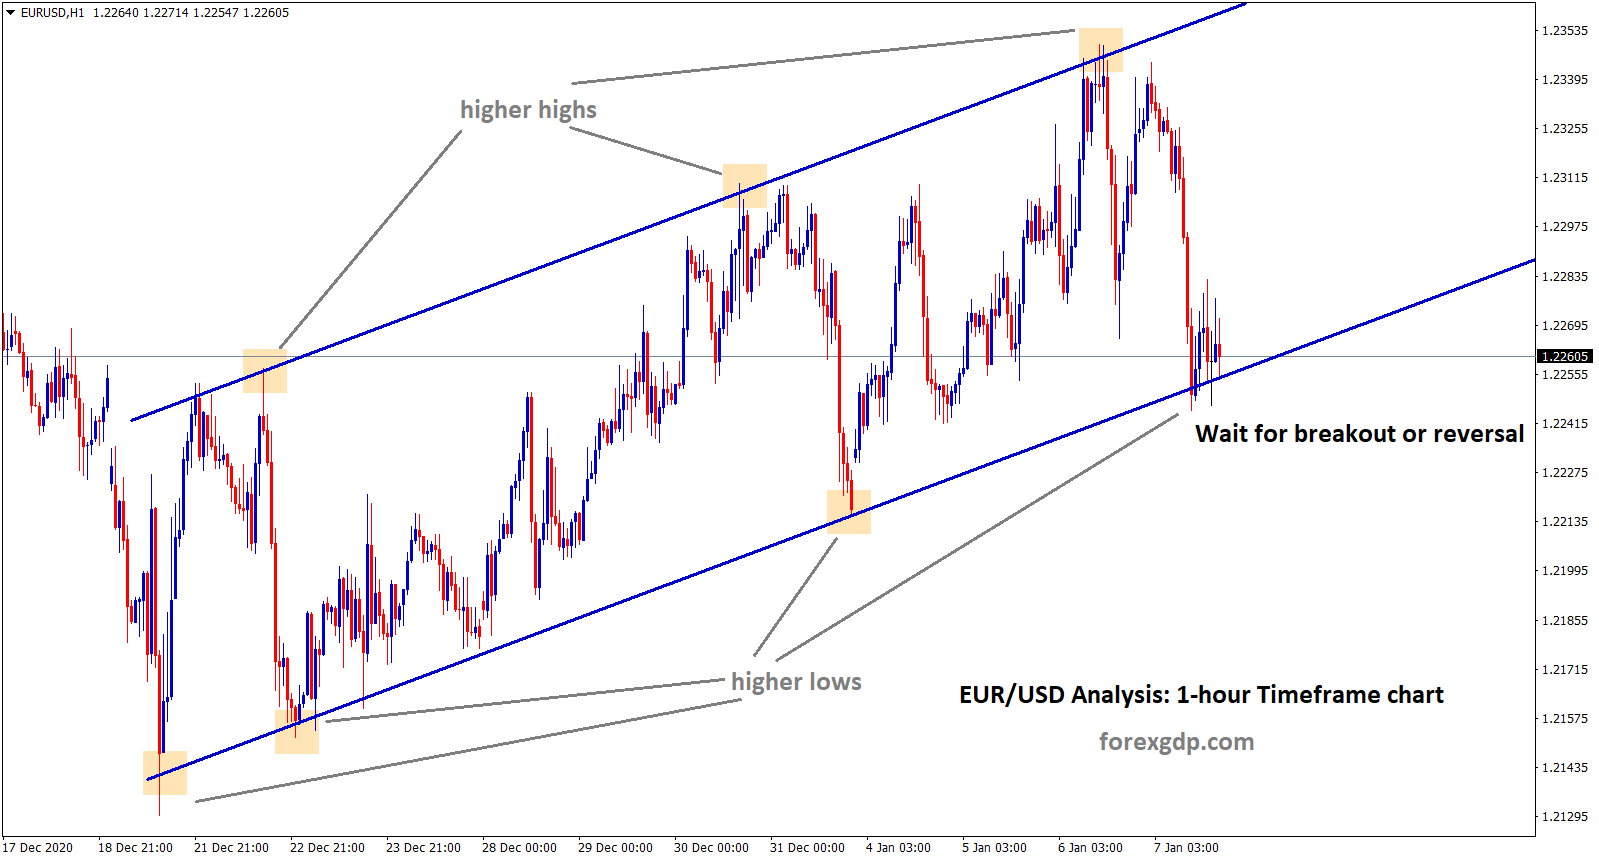 eurusd moving between higher highs and higher lows in 1hr